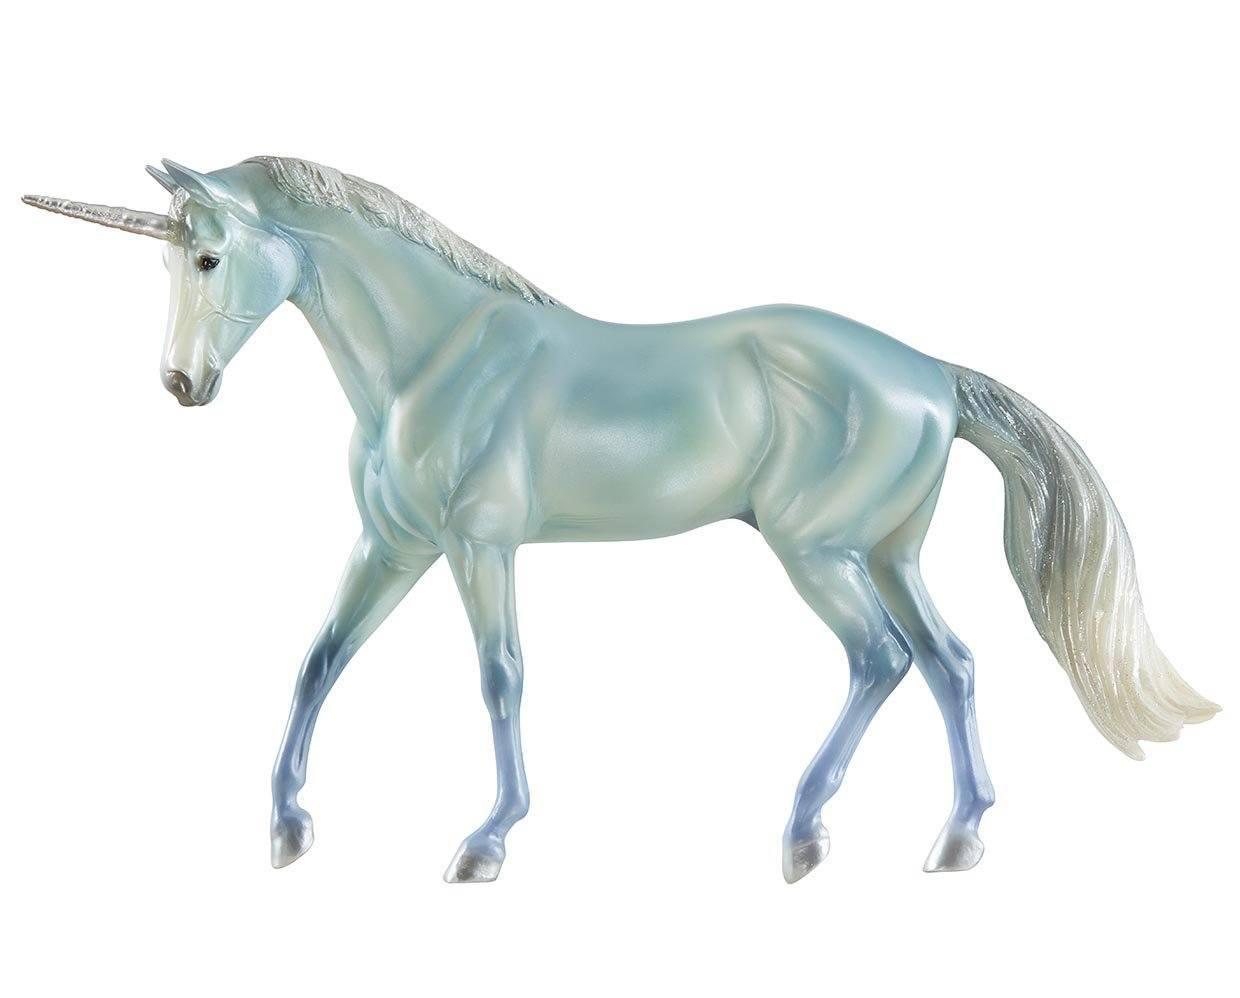 #62060 Le Mer Unicorn of the Sea Pearly Seafoam Classic Freedom Stock Horse Gelding